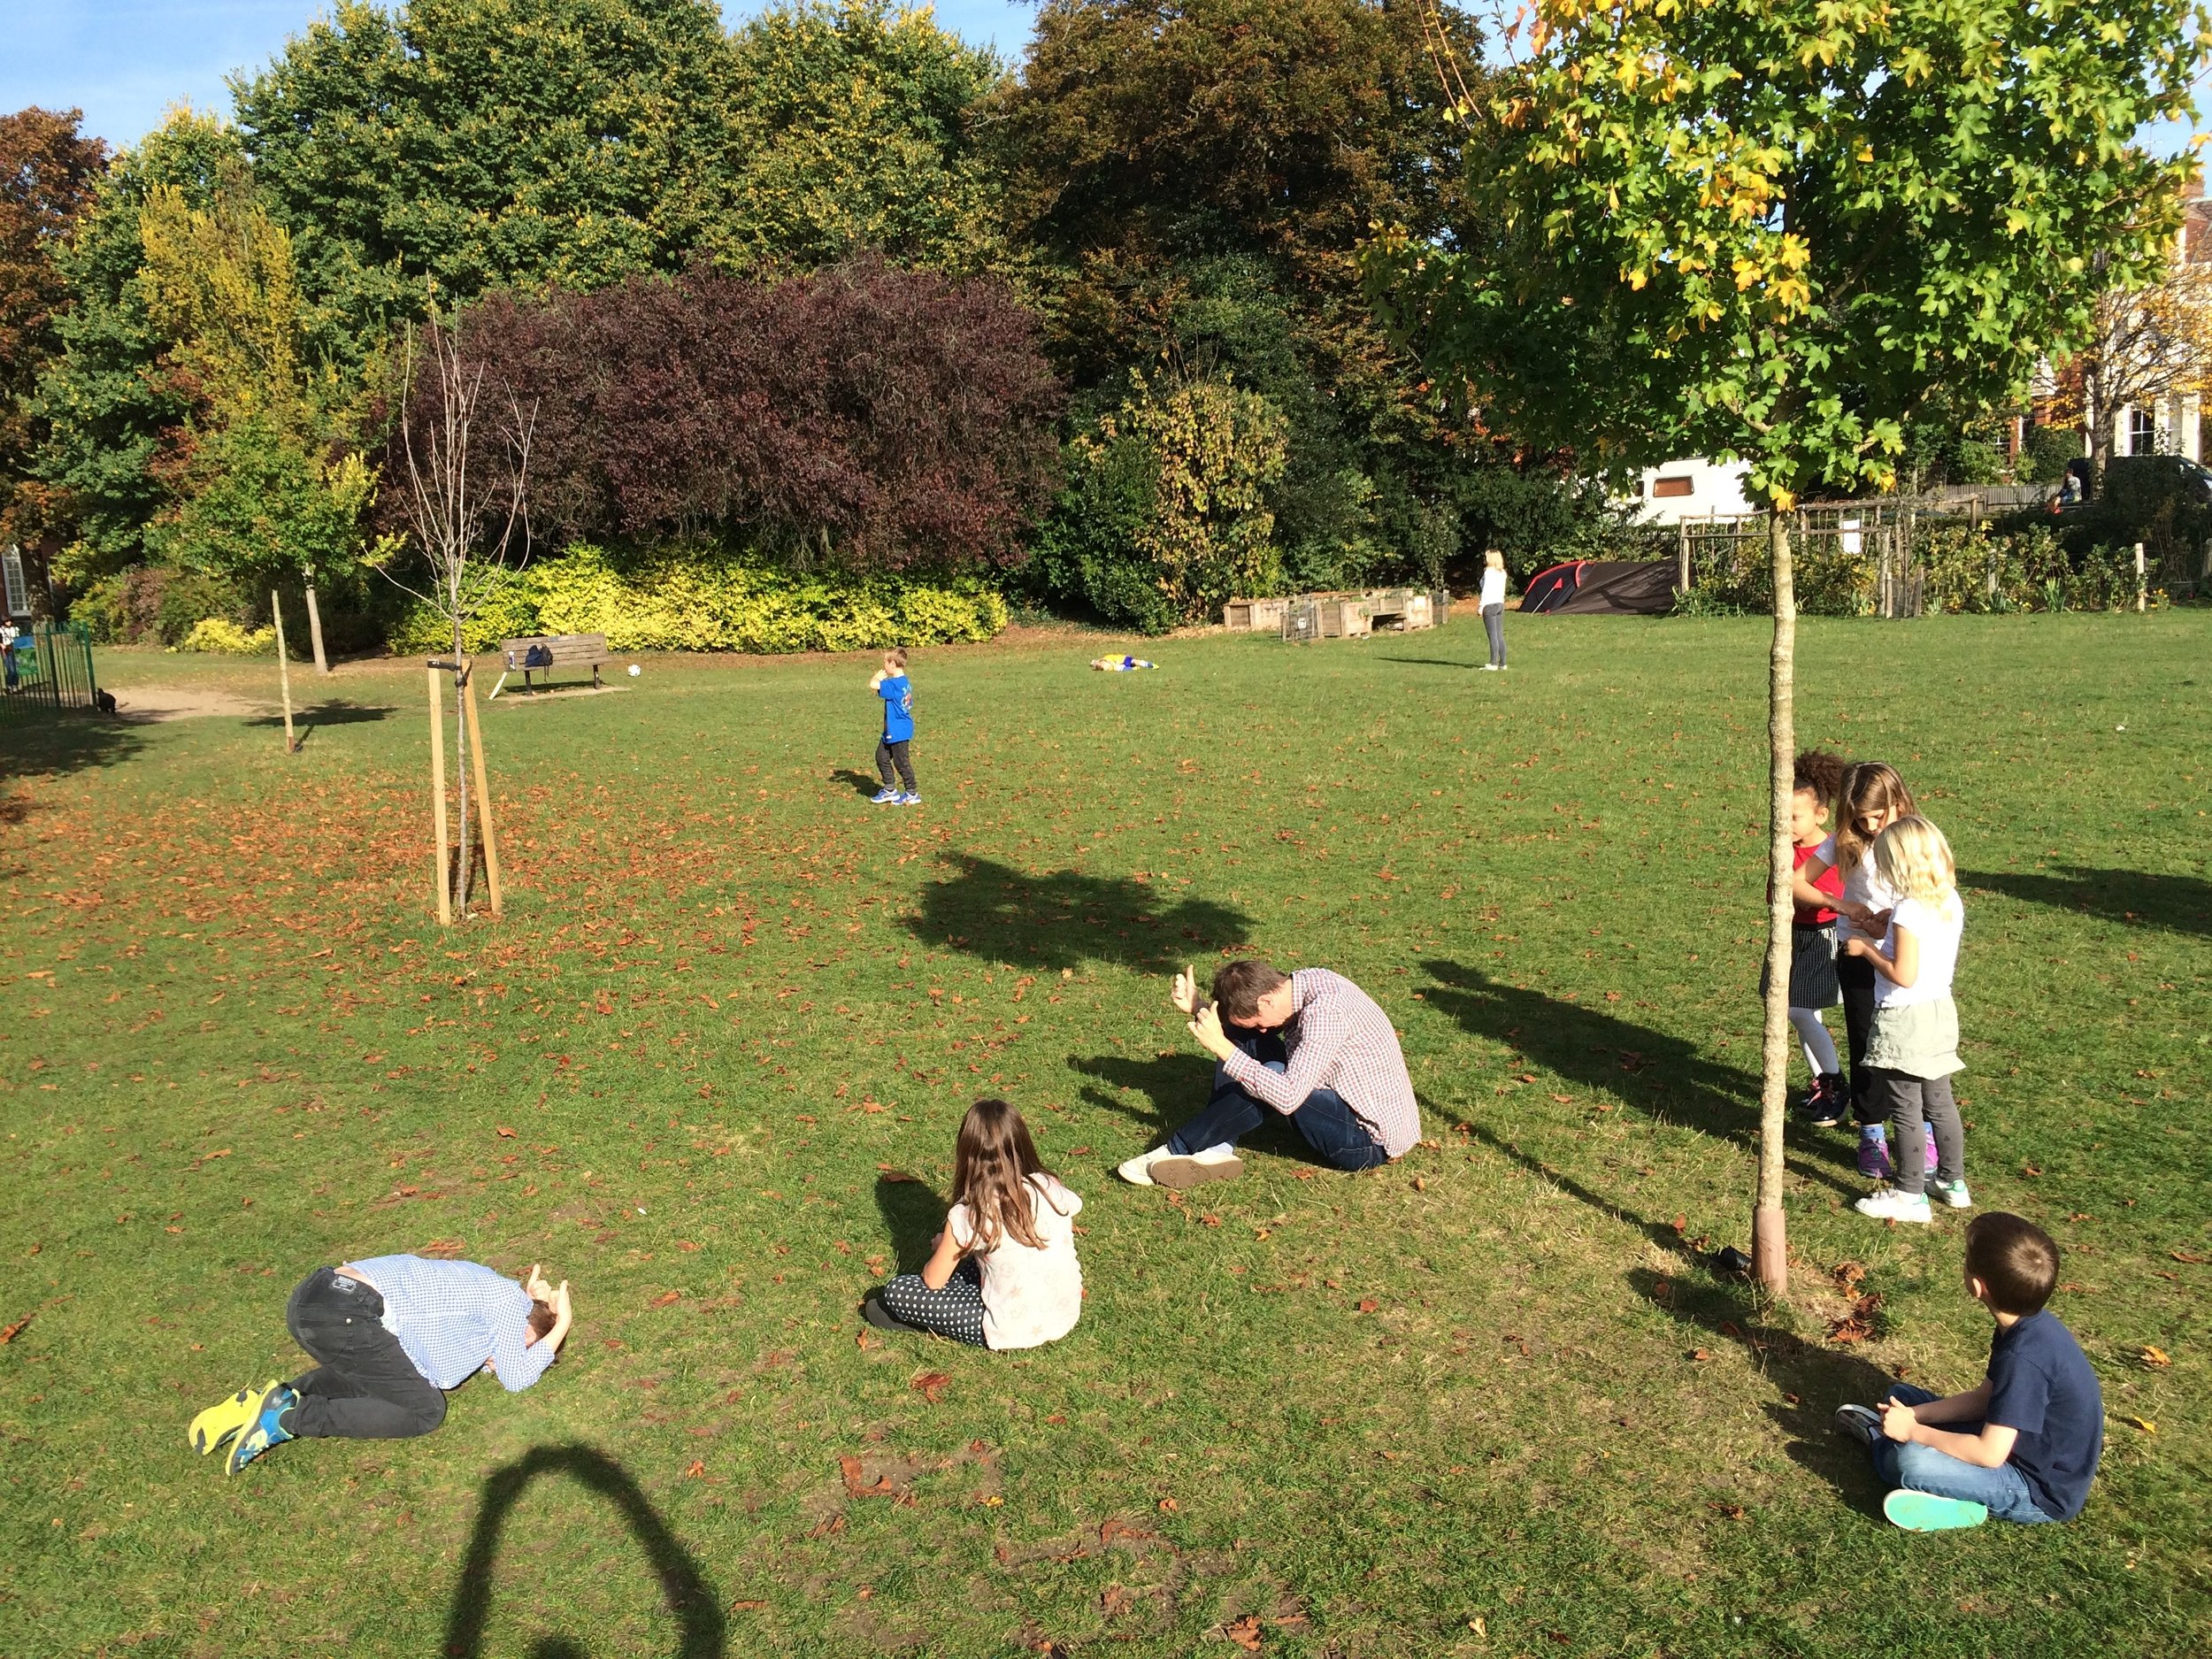 Playing 'Heads down, thumbs up' in the park.